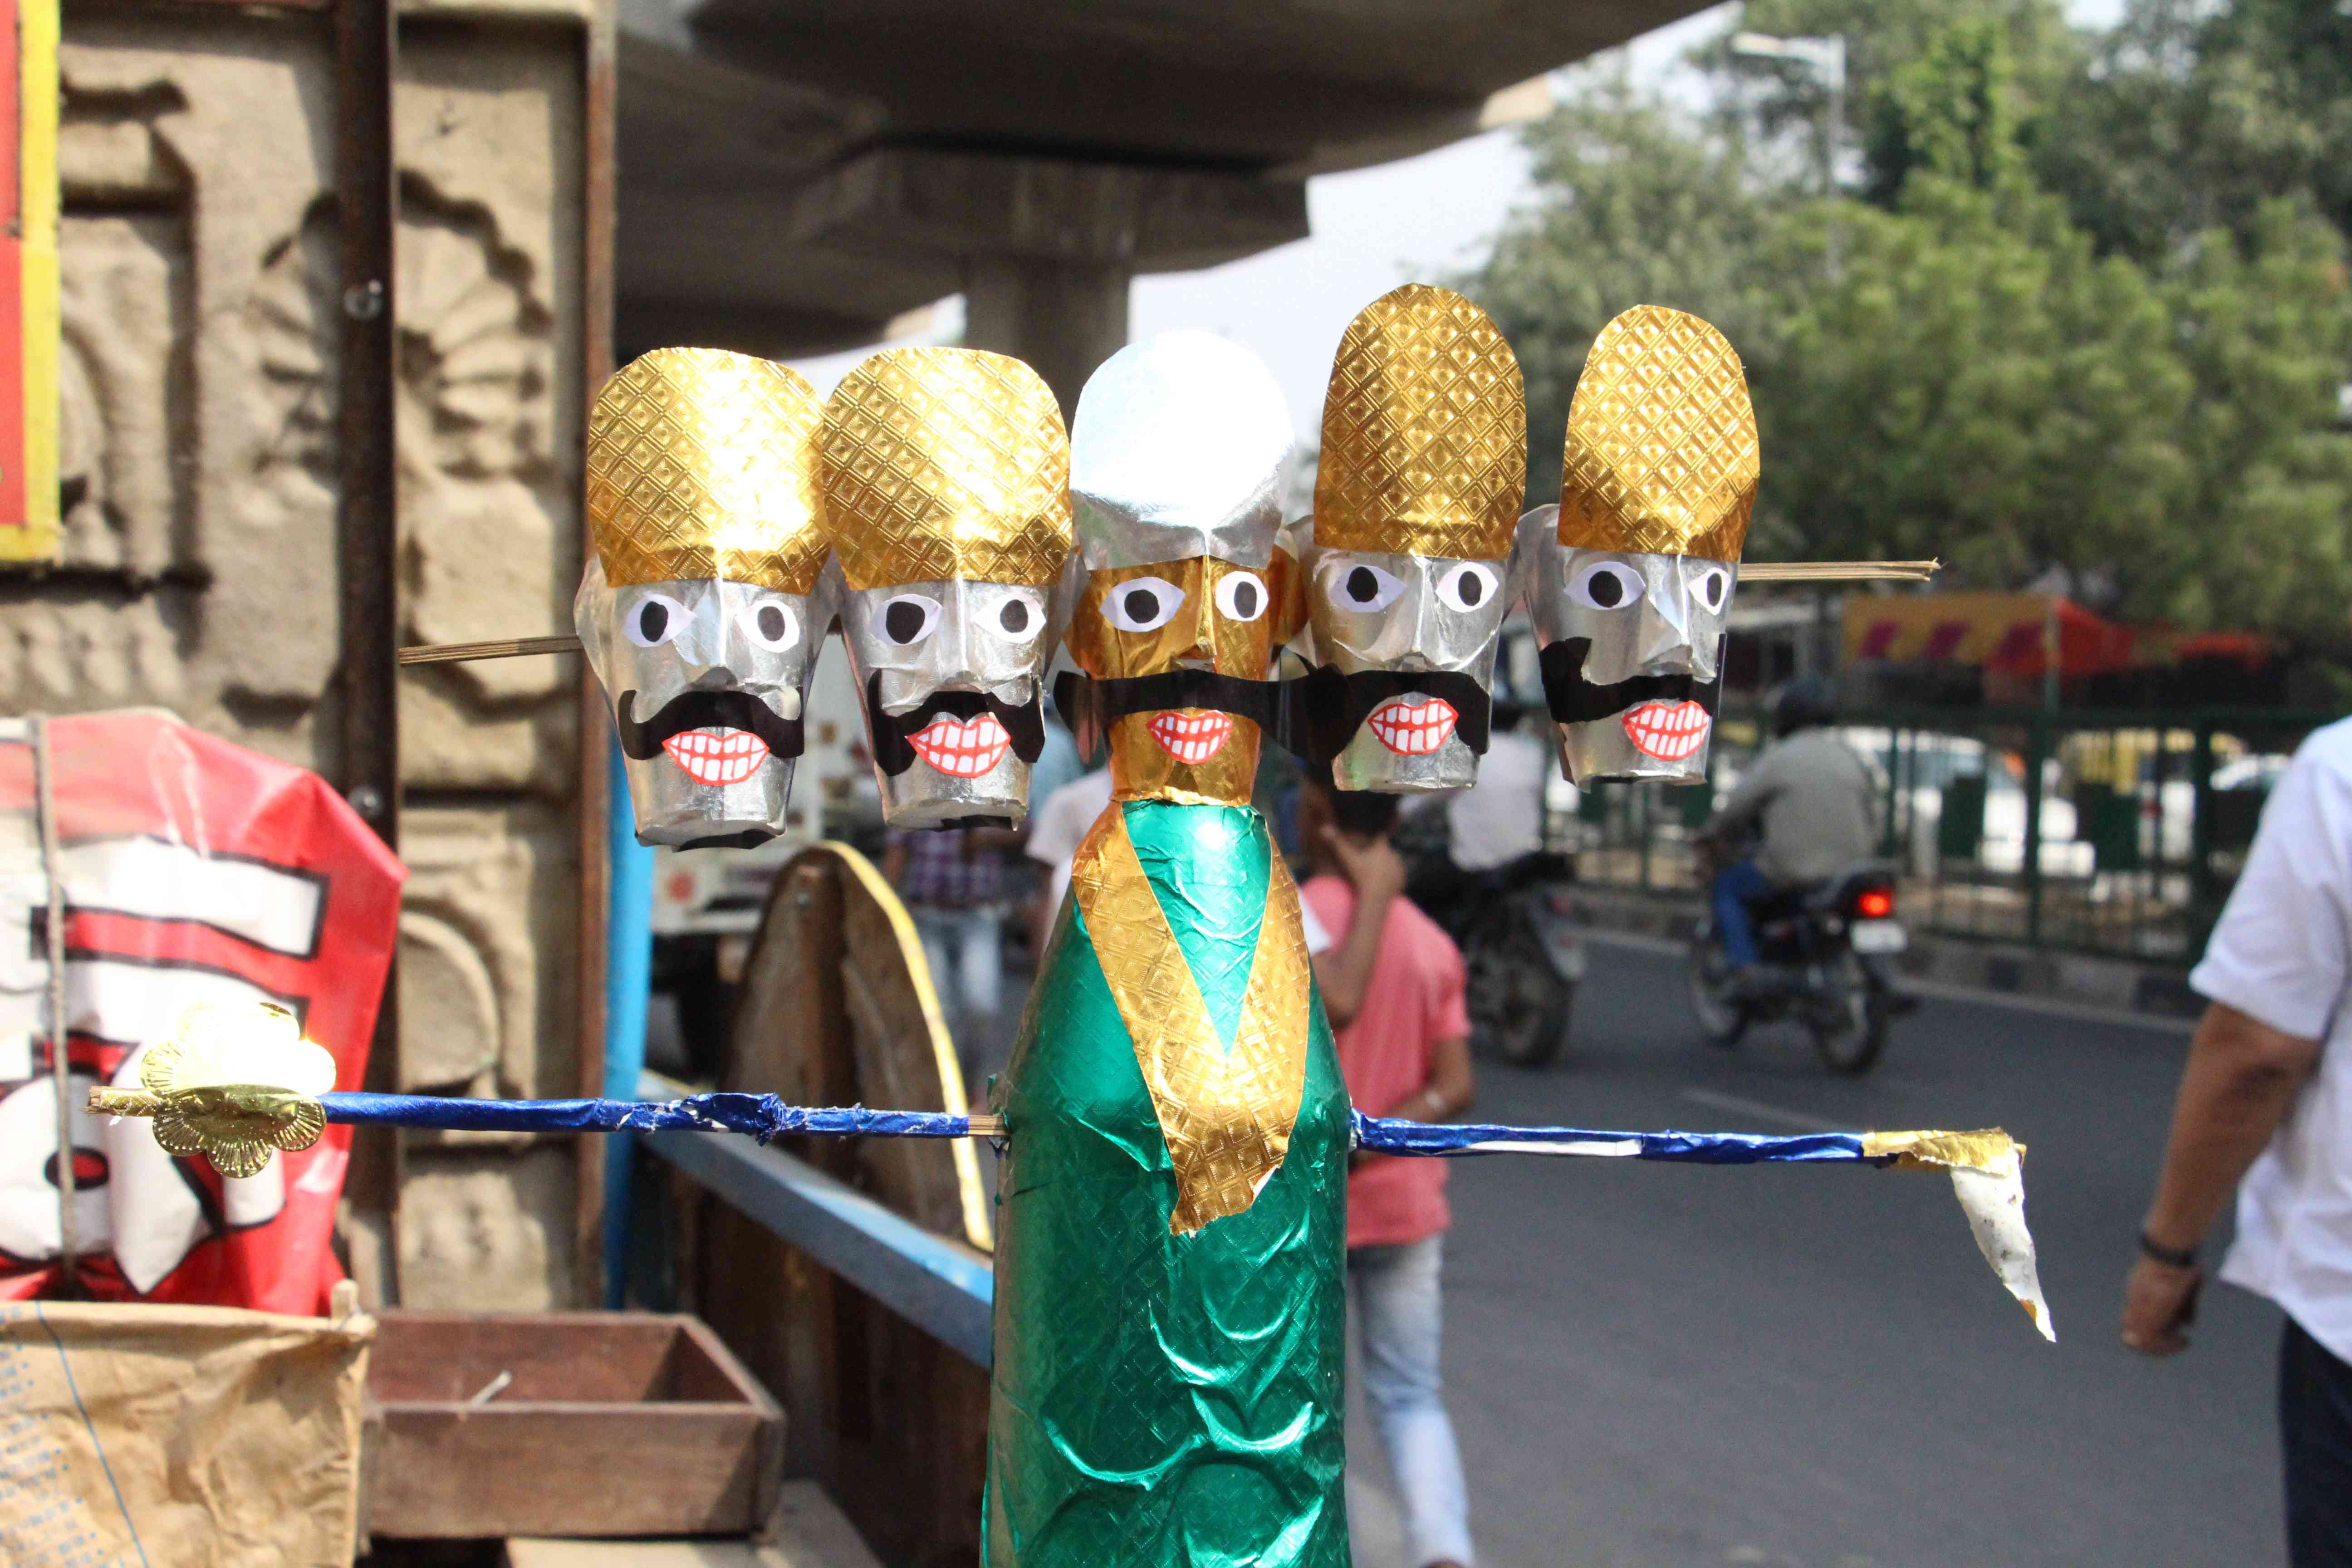 The effigies are stuffed with firecrackers and other flammable substances before they are sett alight.